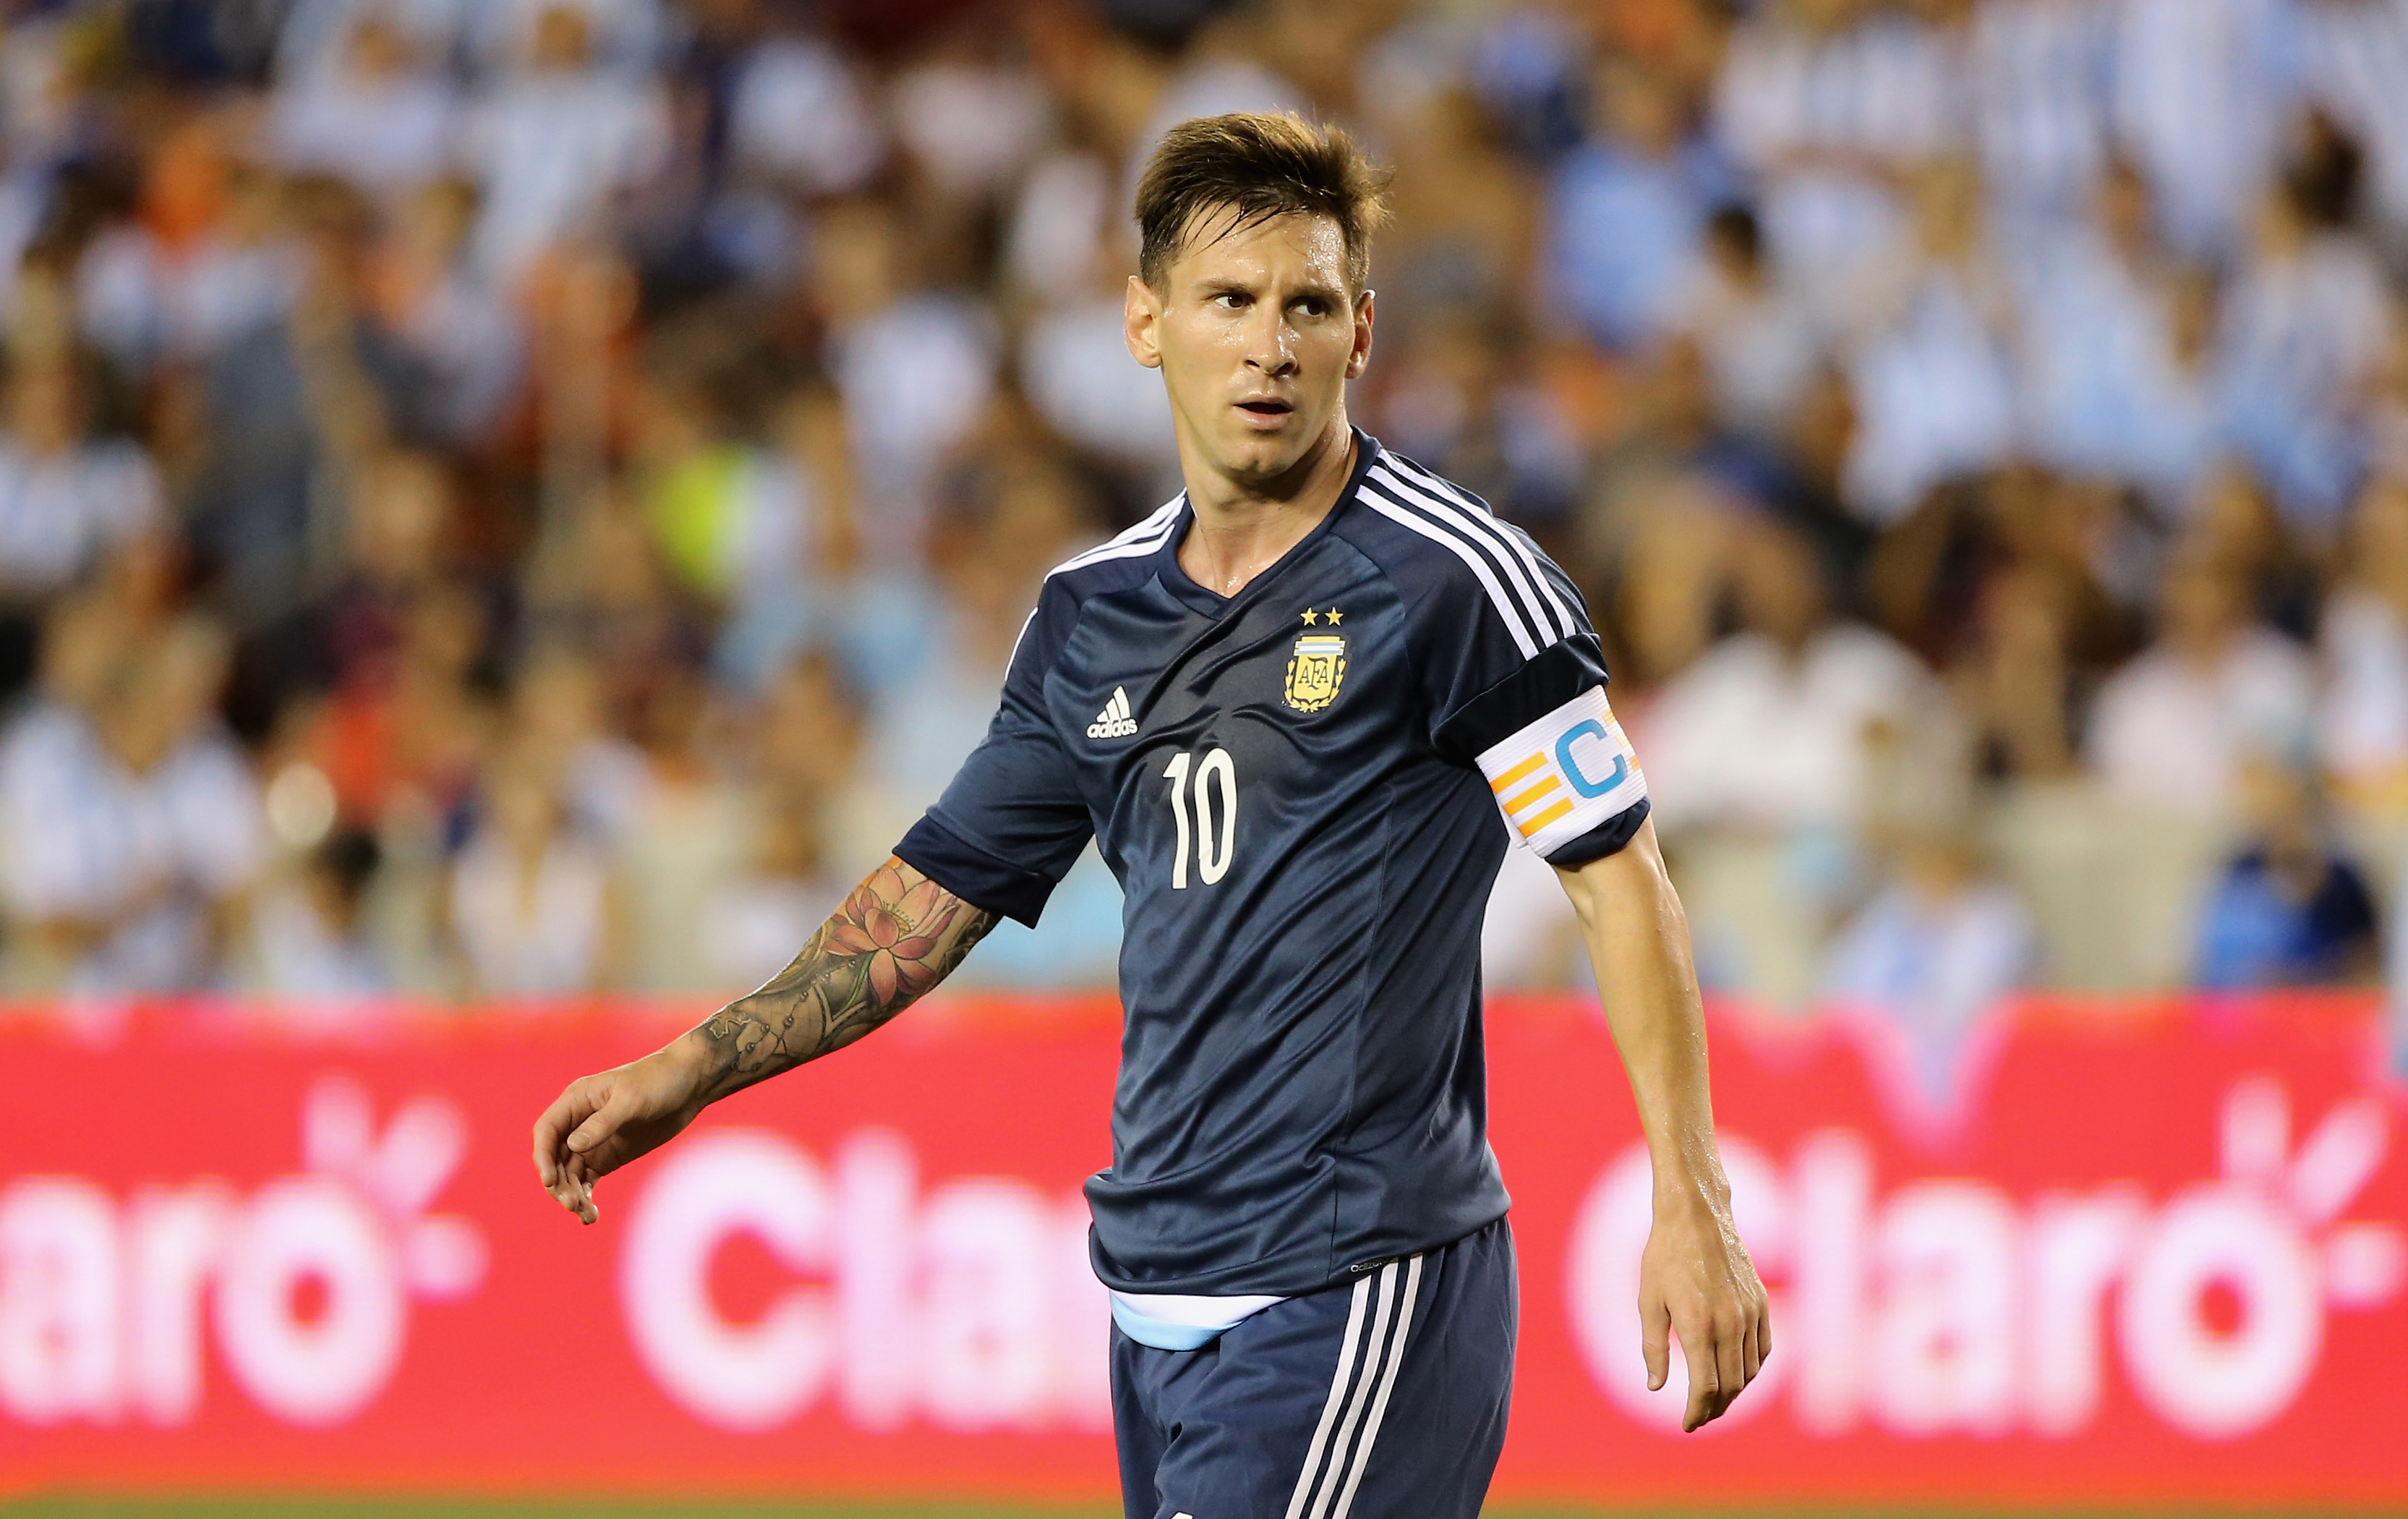 Argentina's Lionel Messi will skip Rio Olympics to rest, coach says | Fox News